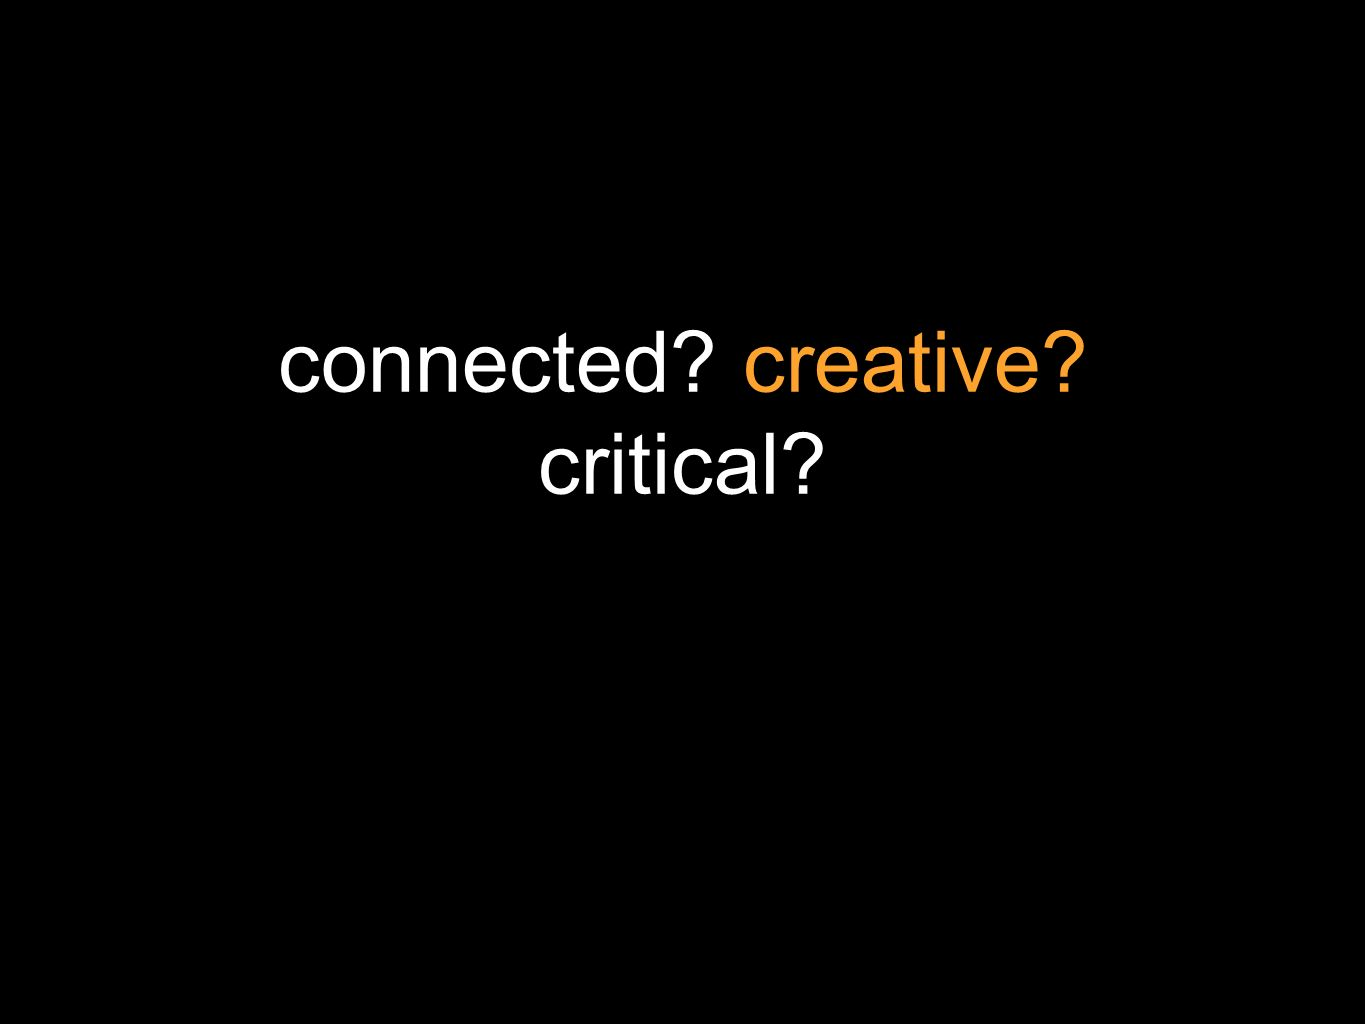 connected? creative? critical?